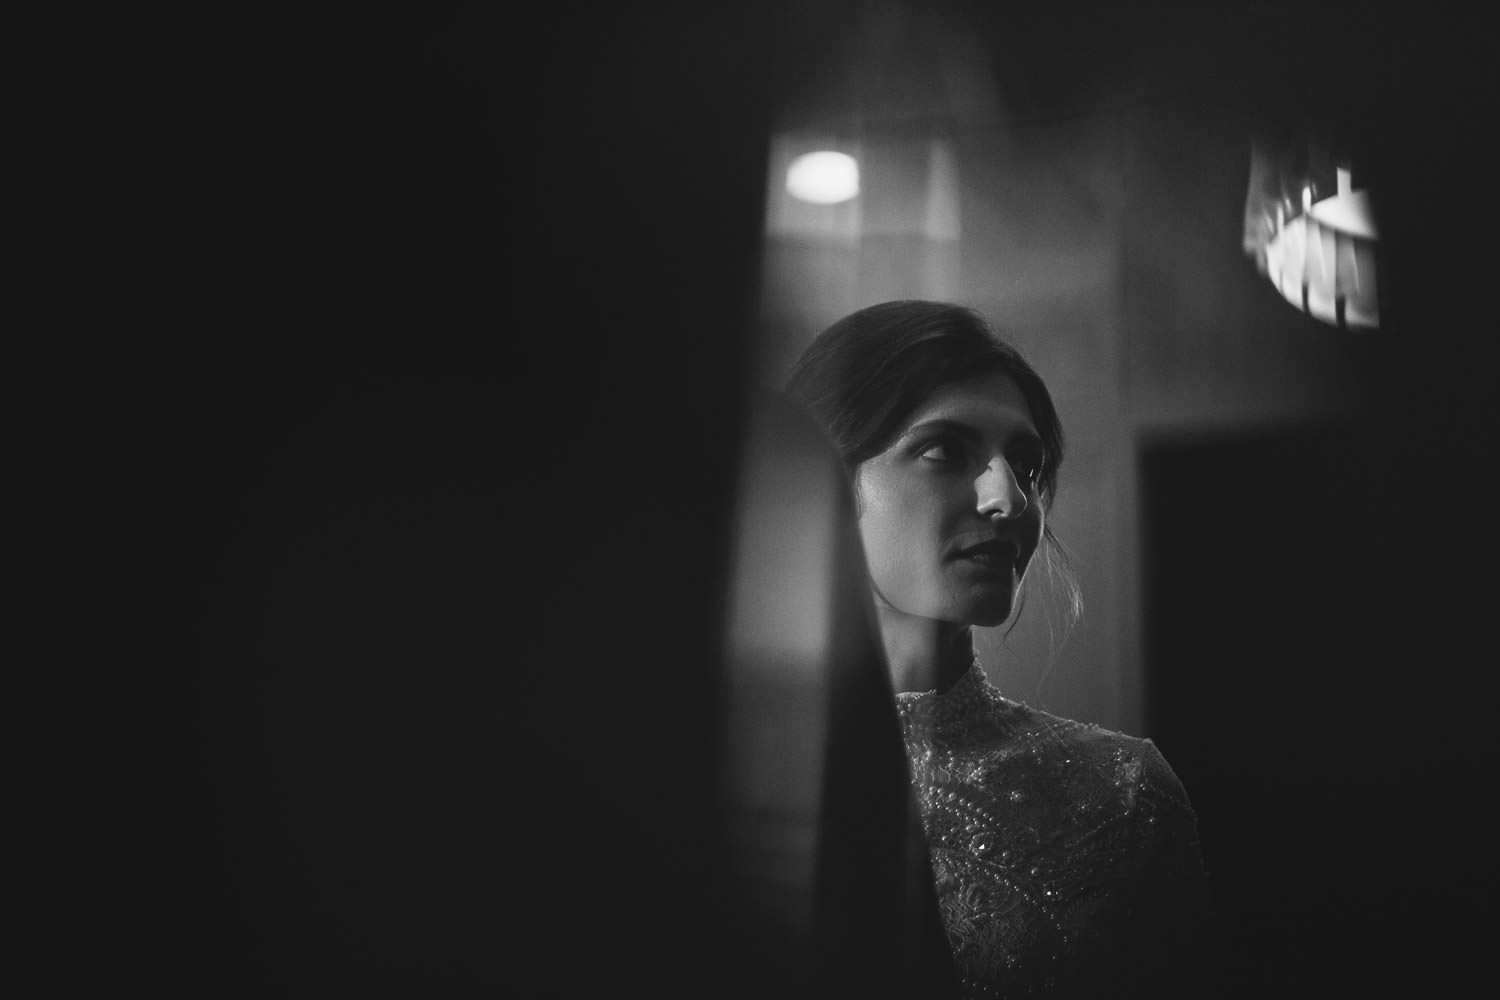 Picture of the bride taken on the wedding day during the ceremony at Hotel Gray in Chicago